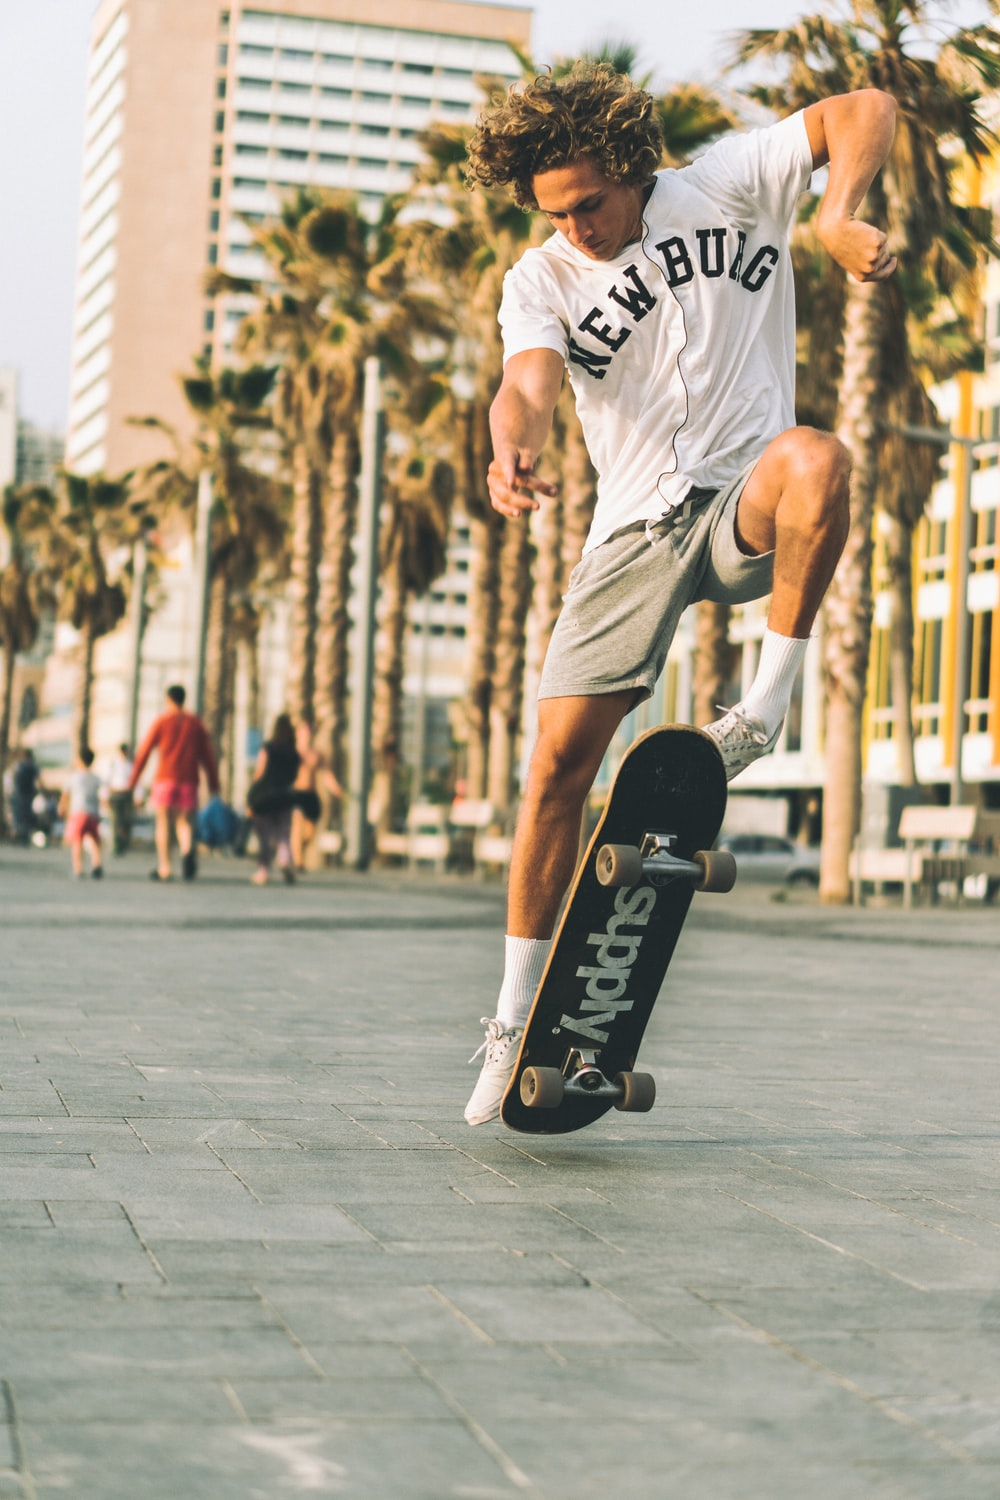 man wearing white and black t-shirt skating on road near buildings